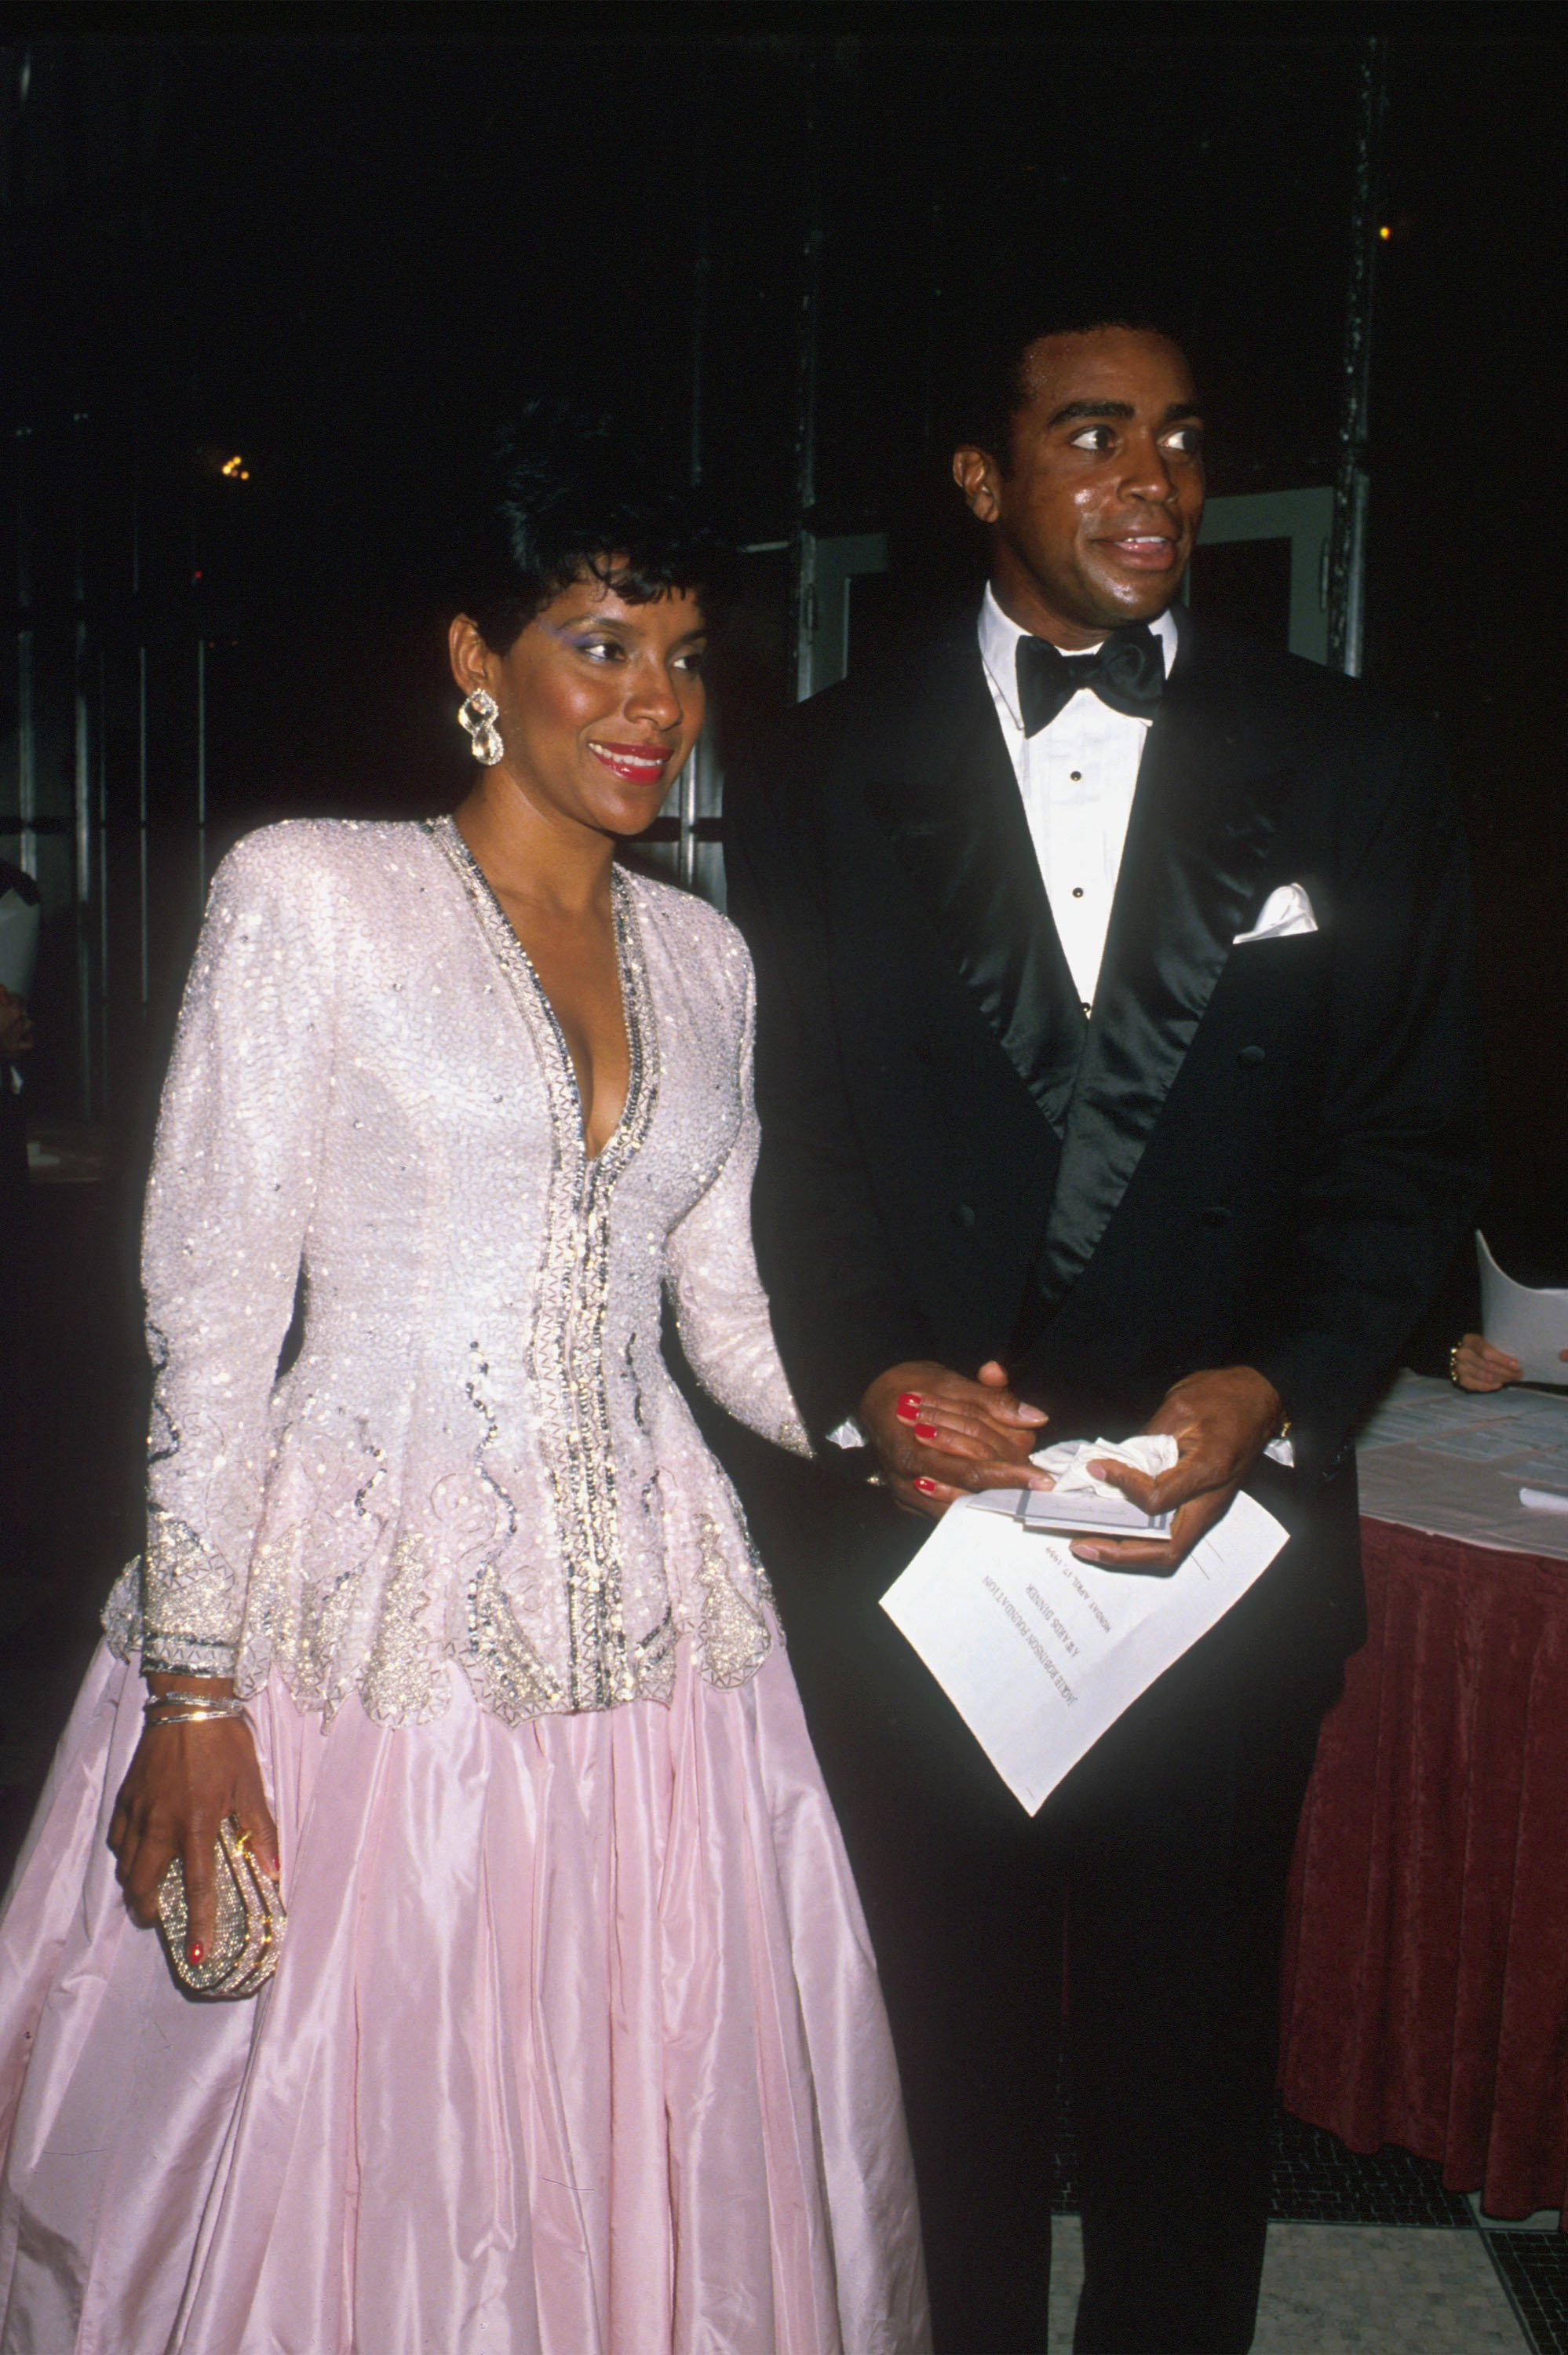 Phylicia Rashad and Ahmad Rashad in New York City, on April 15, 1989 | Photo: Getty Images